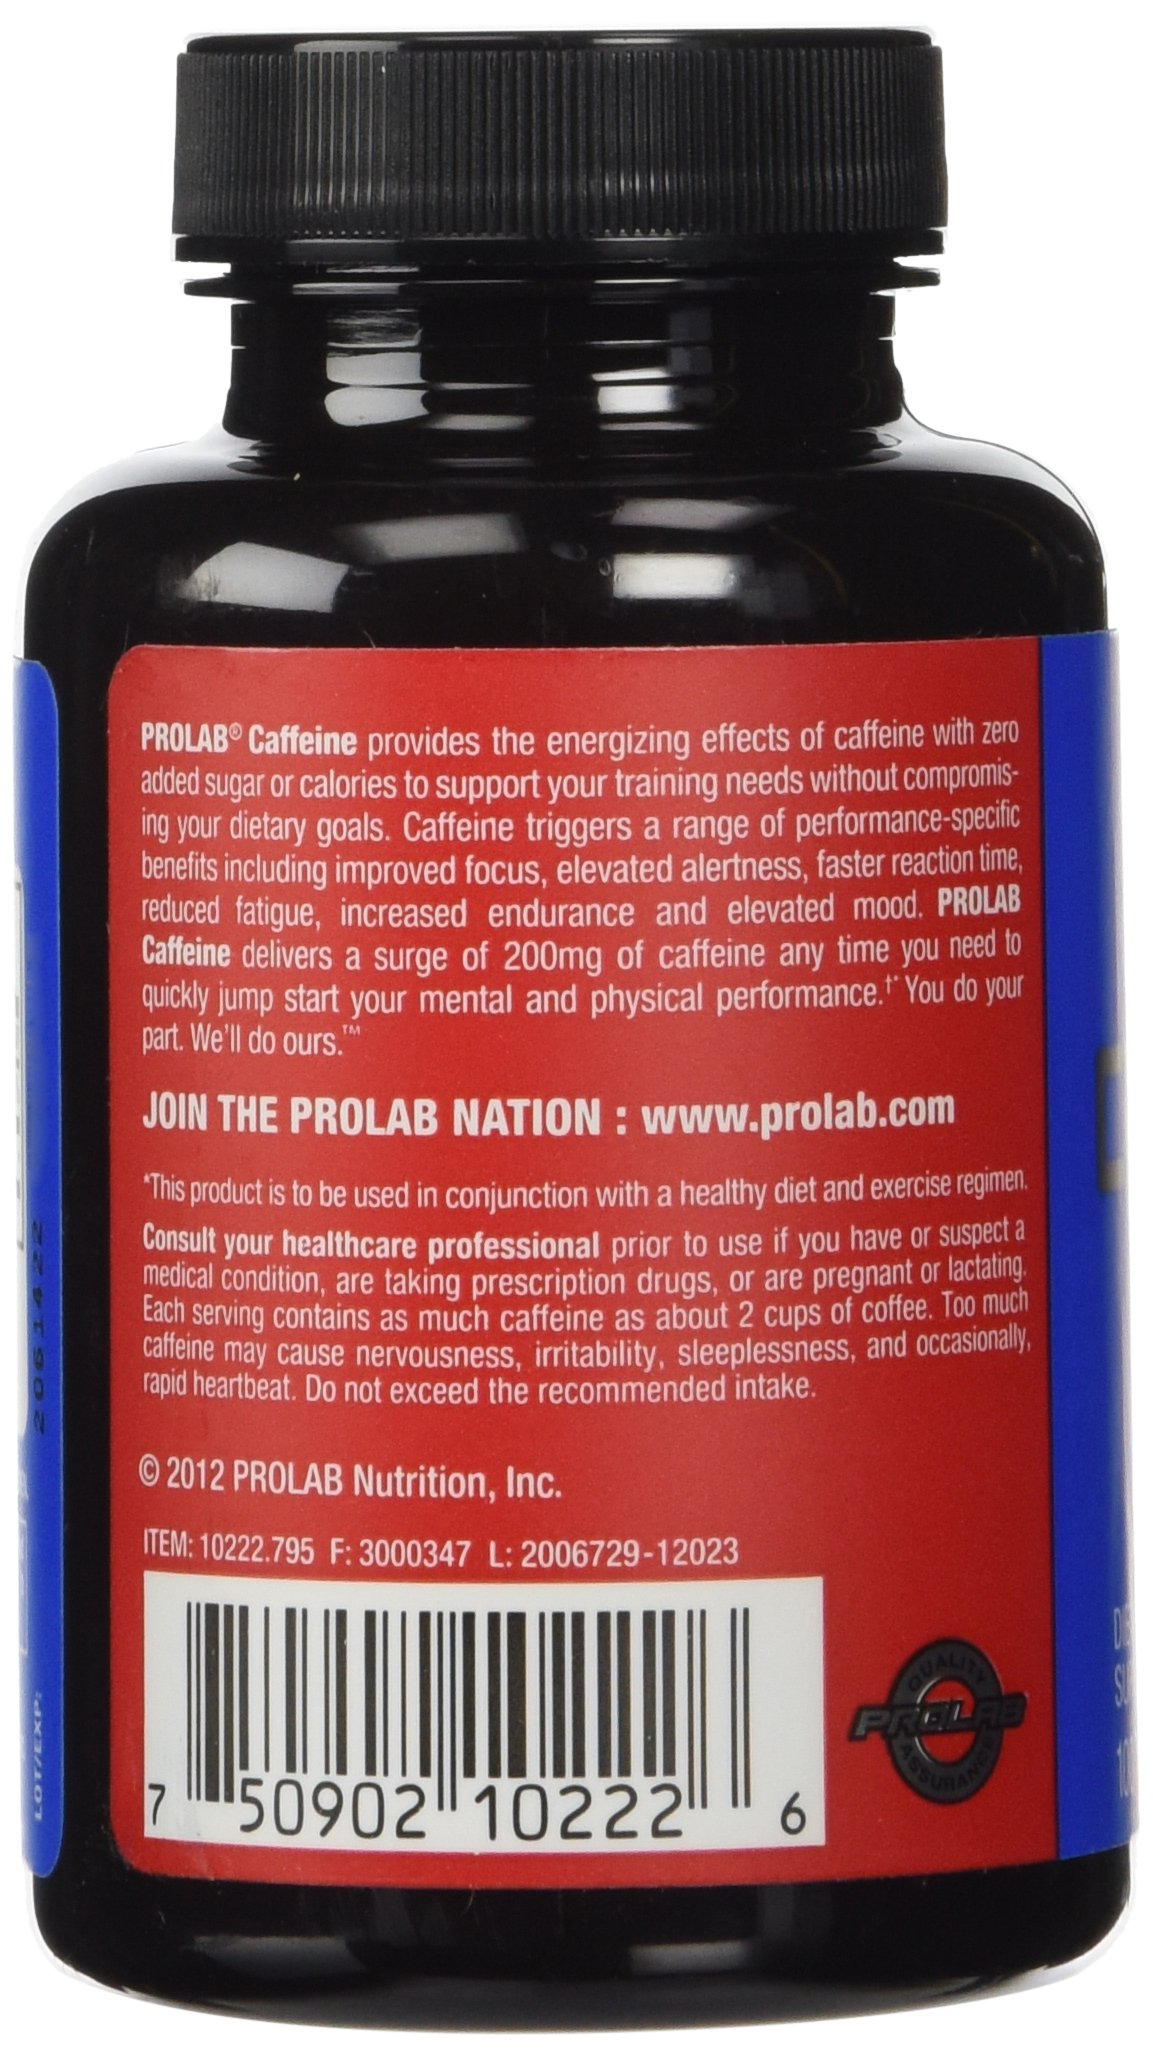 ProLab Caffeine Pills Energy and Focus: (3) 100-Count Bottles (200 mg) by ProLab (Image #6)